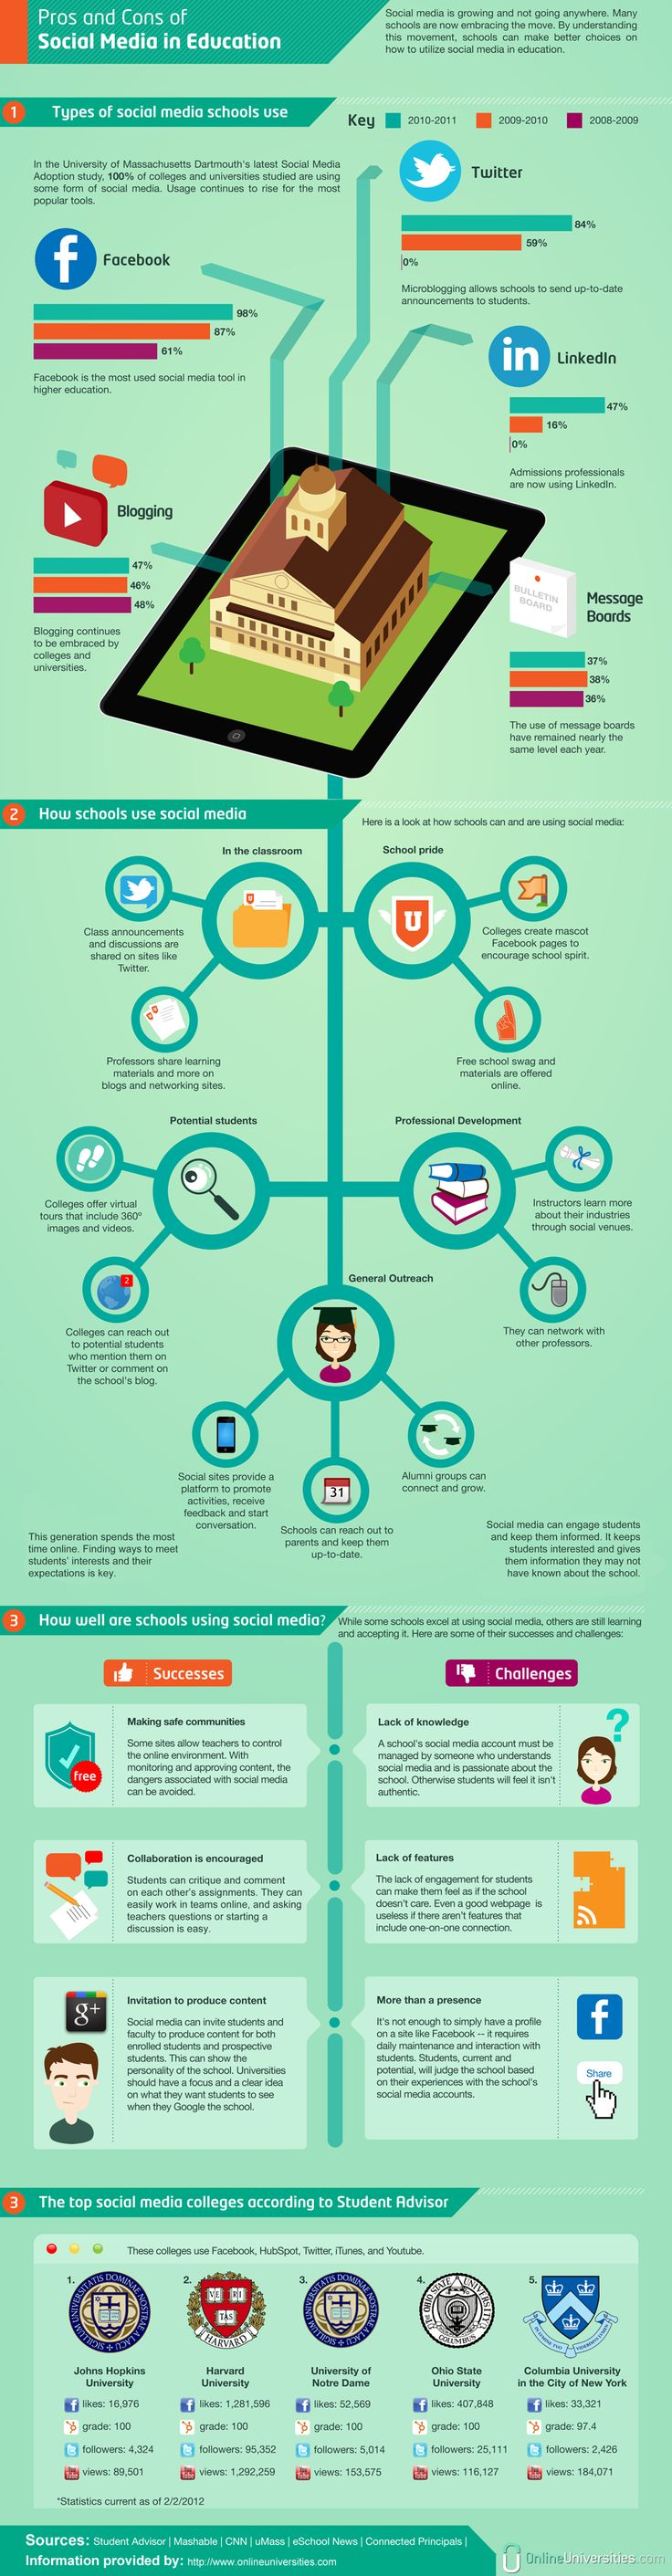 Social Media Education Infographic